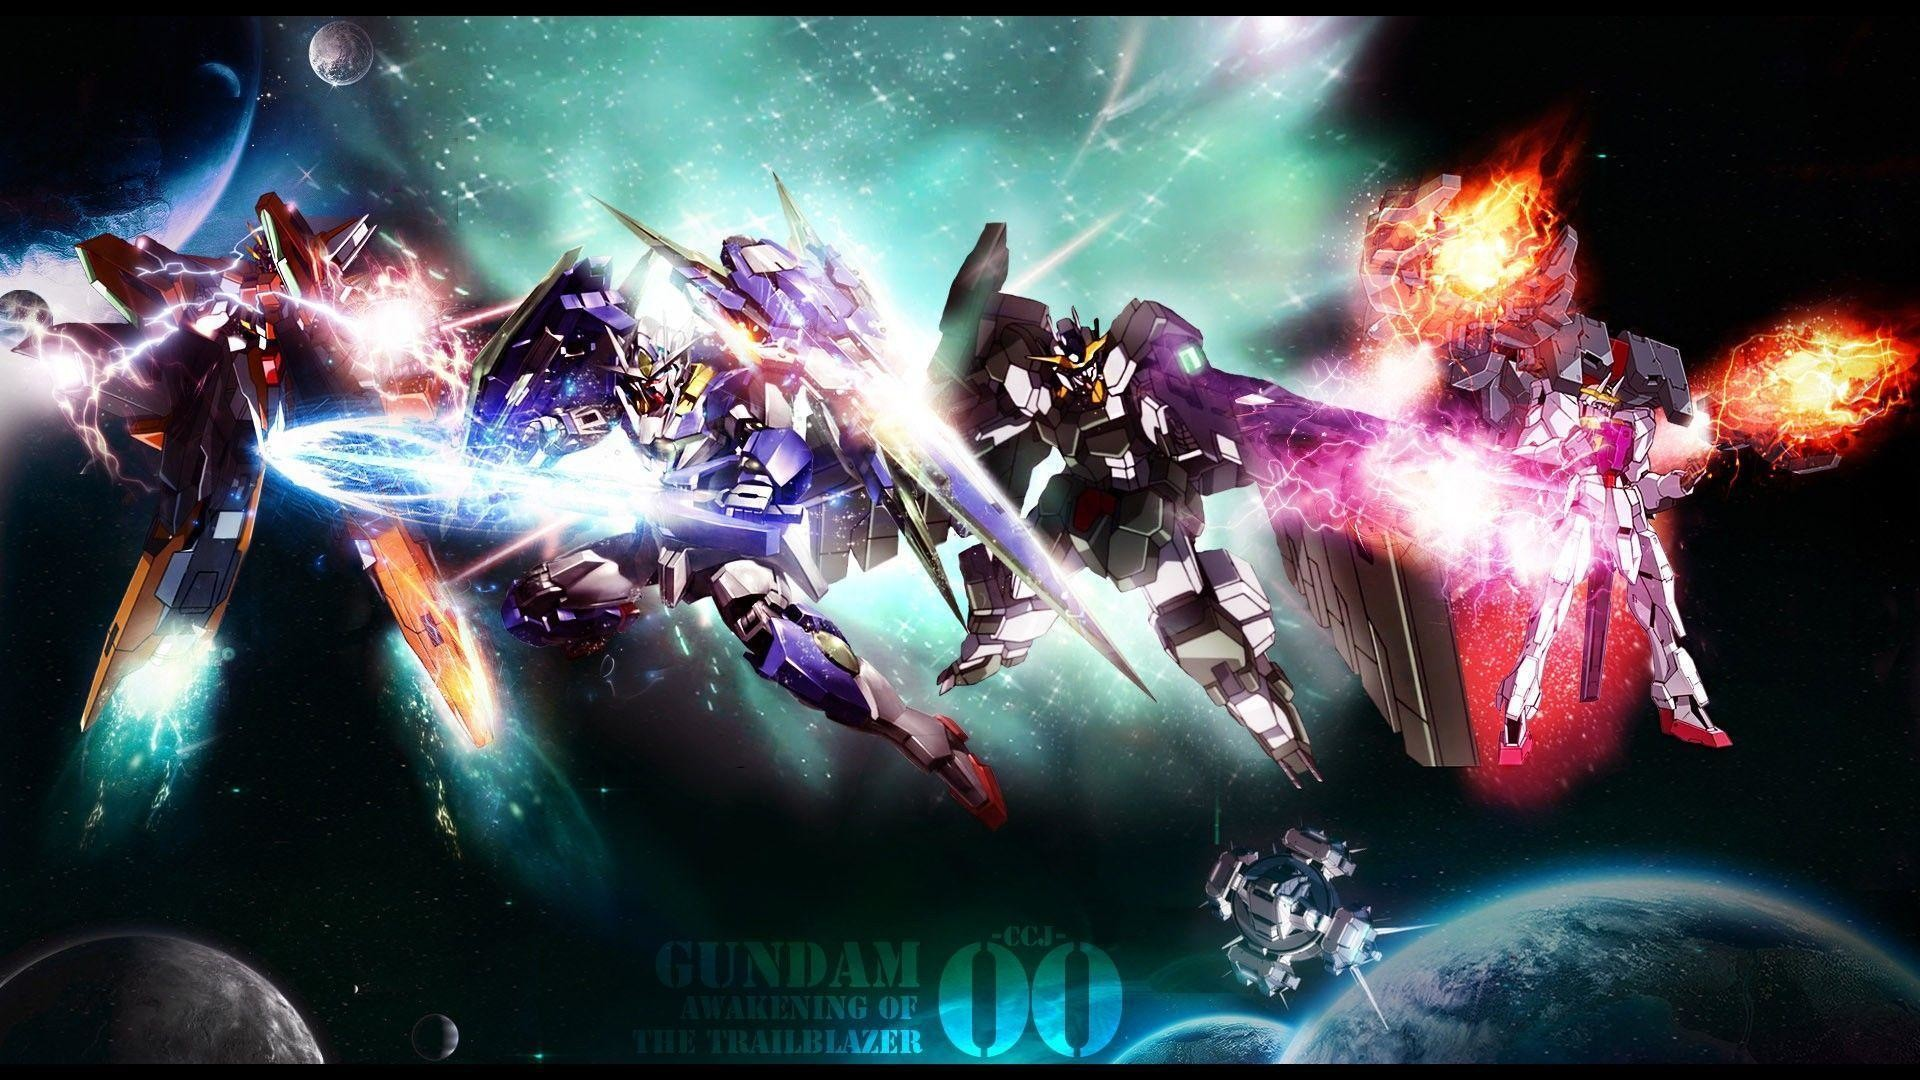 1920x1080 The Images of Mecha Gundam 00 Anime Exia  HD Wallpaper .